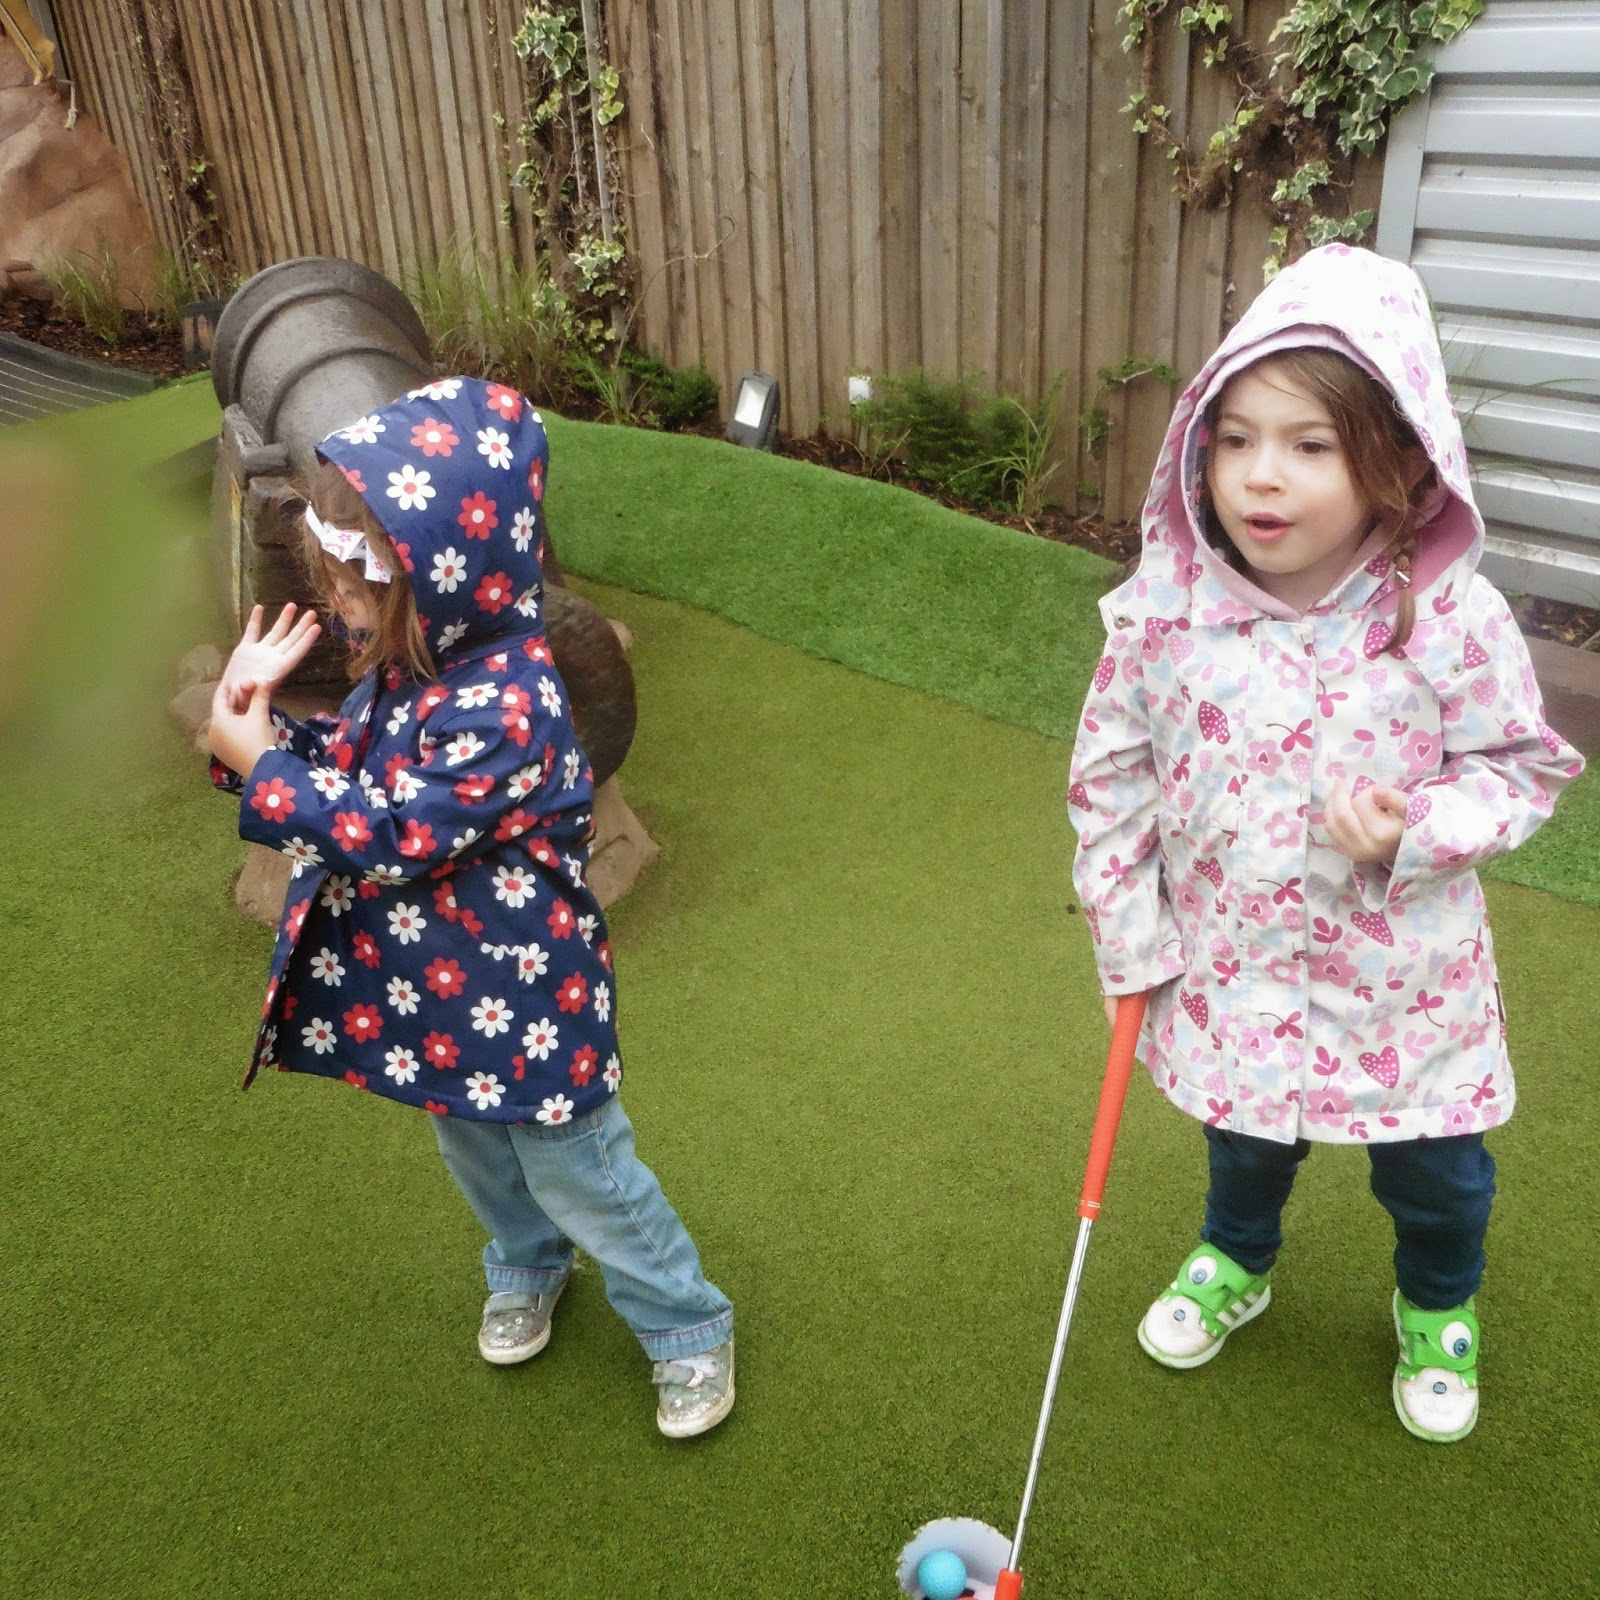 the girls get into the swing of golf